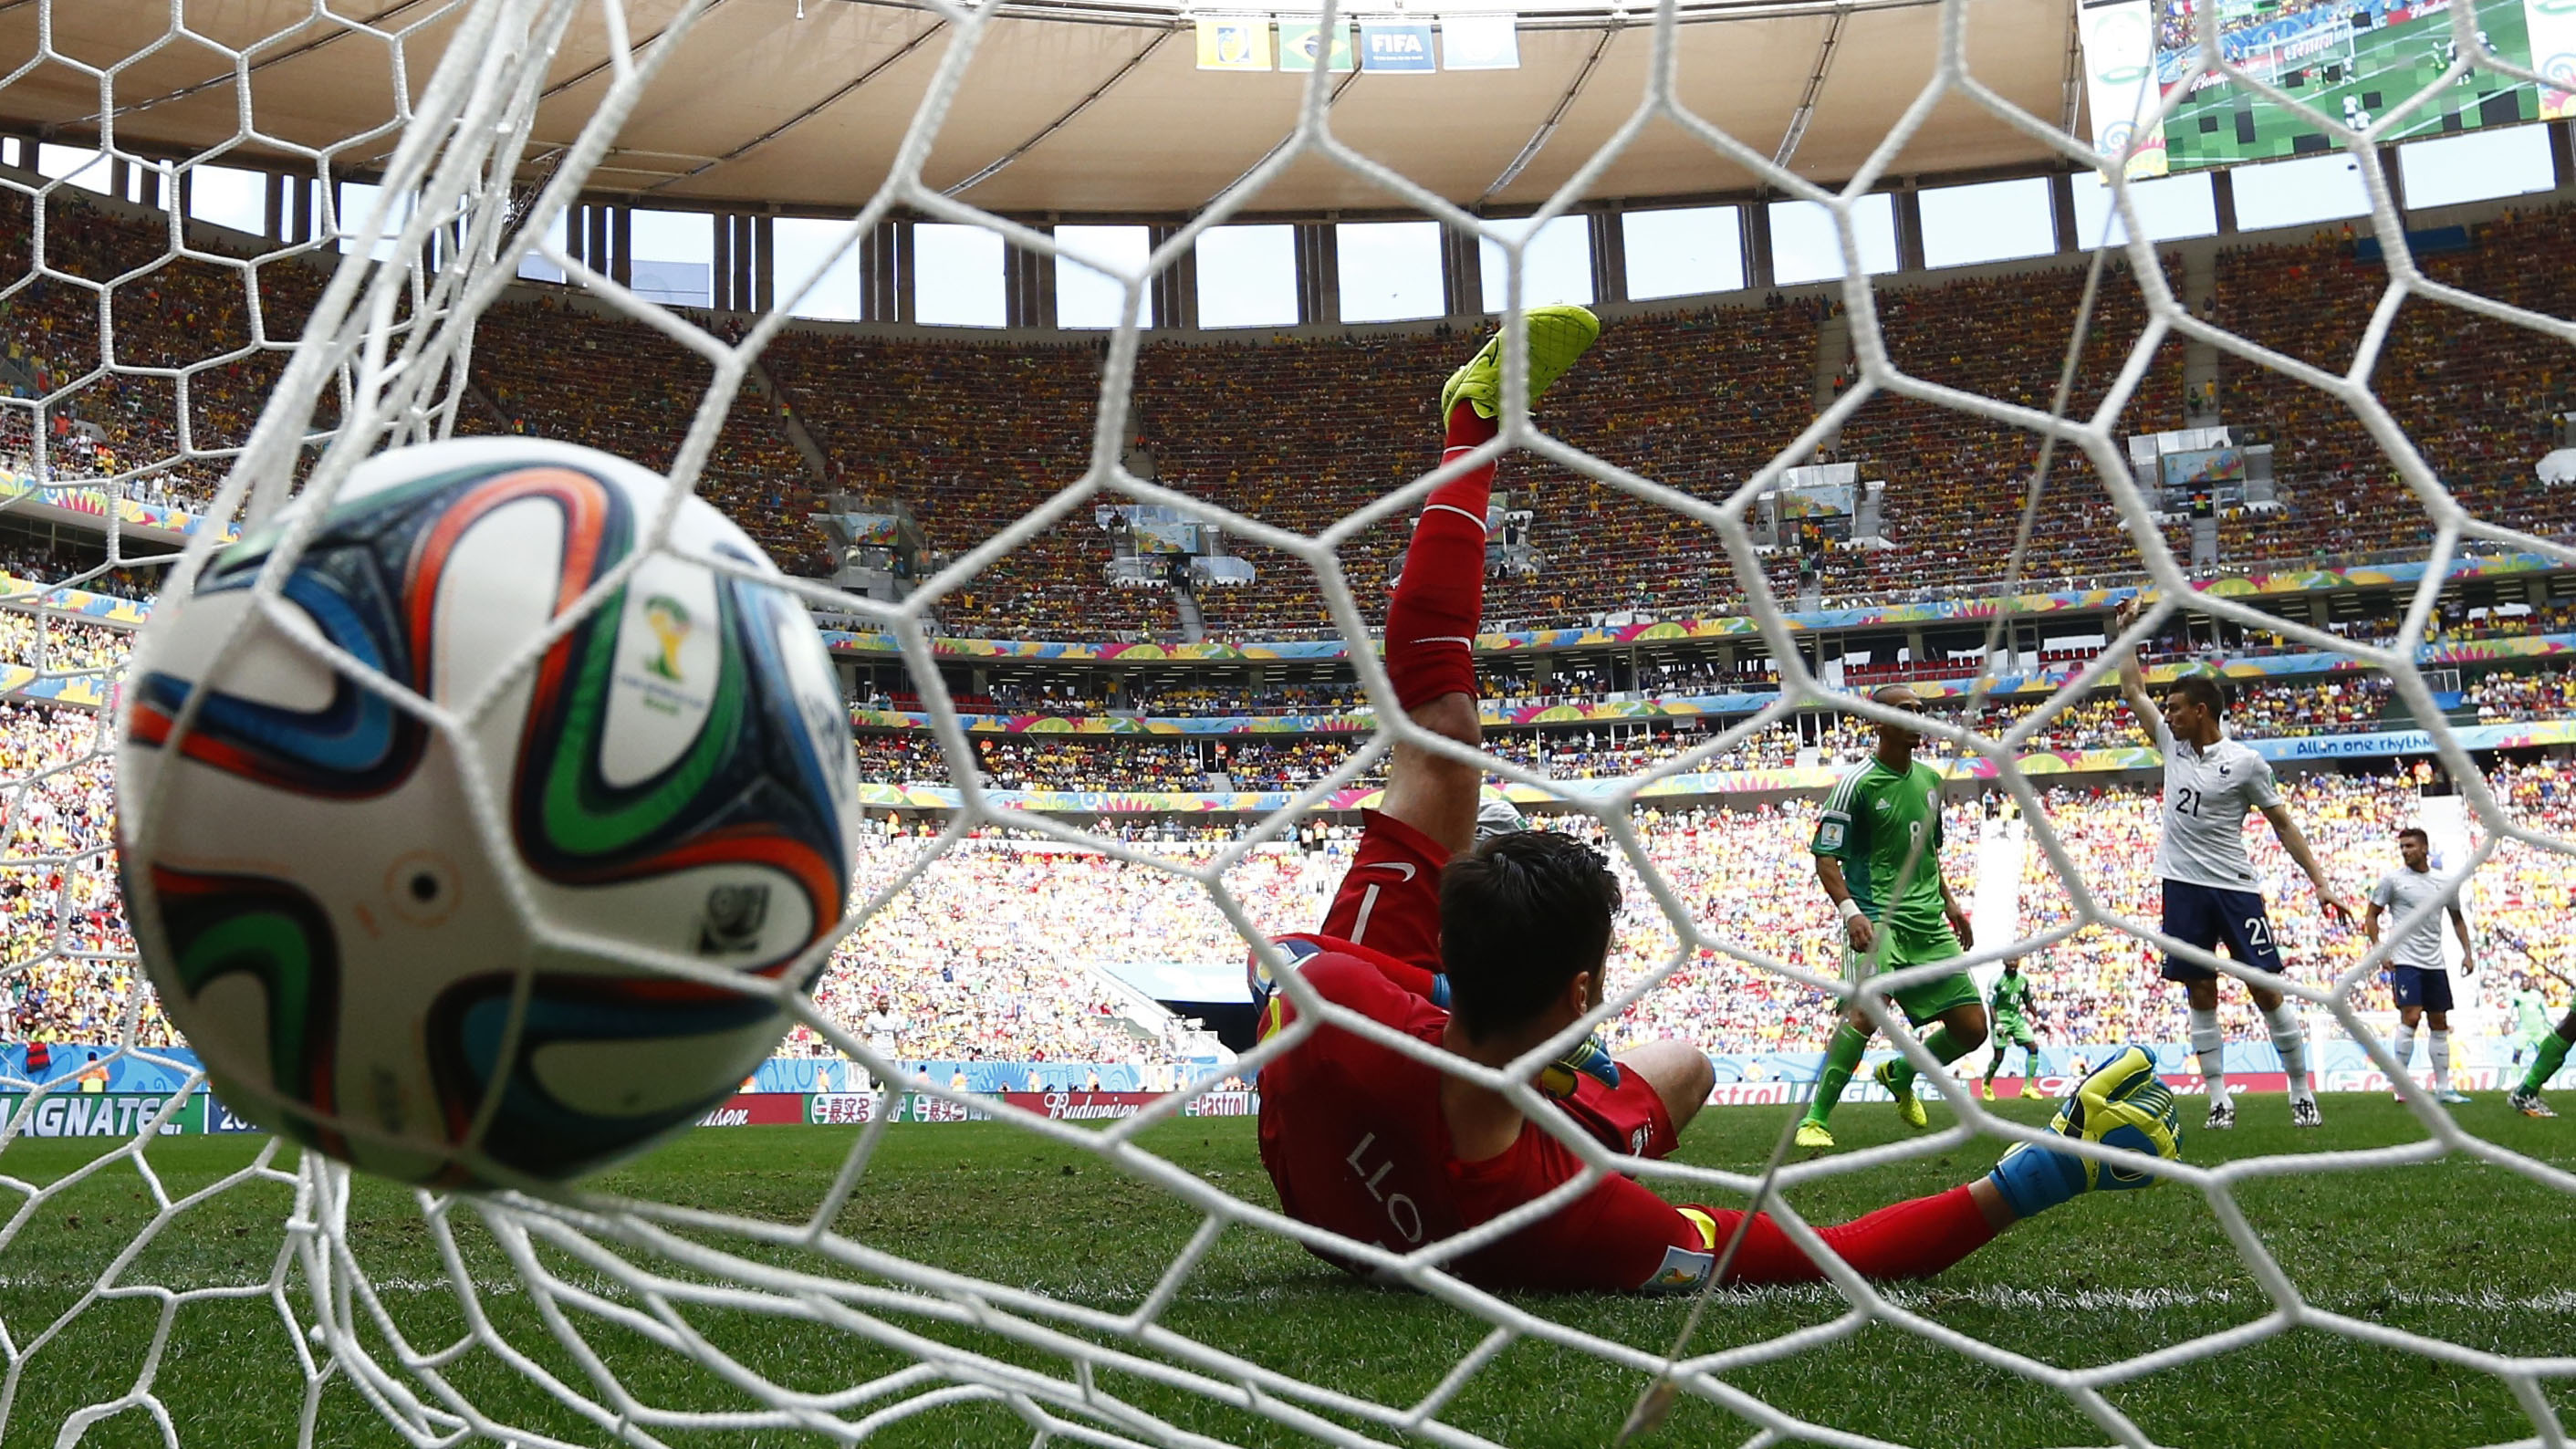 France's goalkeeper Hugo Lloris fails to stop a goal shot by Nigeria's Emmanuel Emenike, which was later disallowed, during their 2014 World Cup round of 16 game at the Brasilia national stadium in Brasilia June 30, 2014.